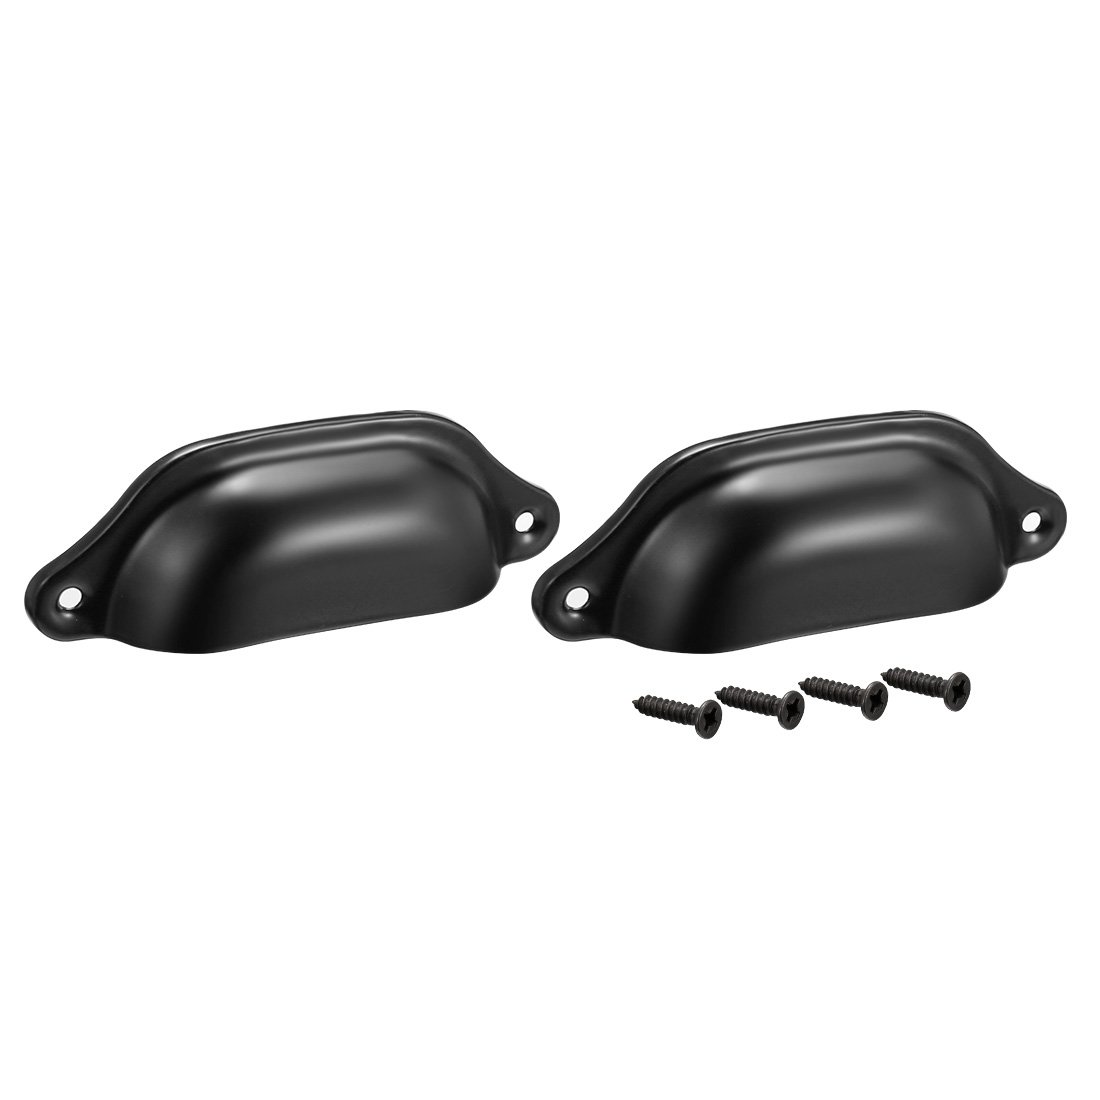 uxcell Cup Drawer Pull Kitchen Cabinet Handles Black 6 Pack a18011600ux0080 83mm Hole Centers